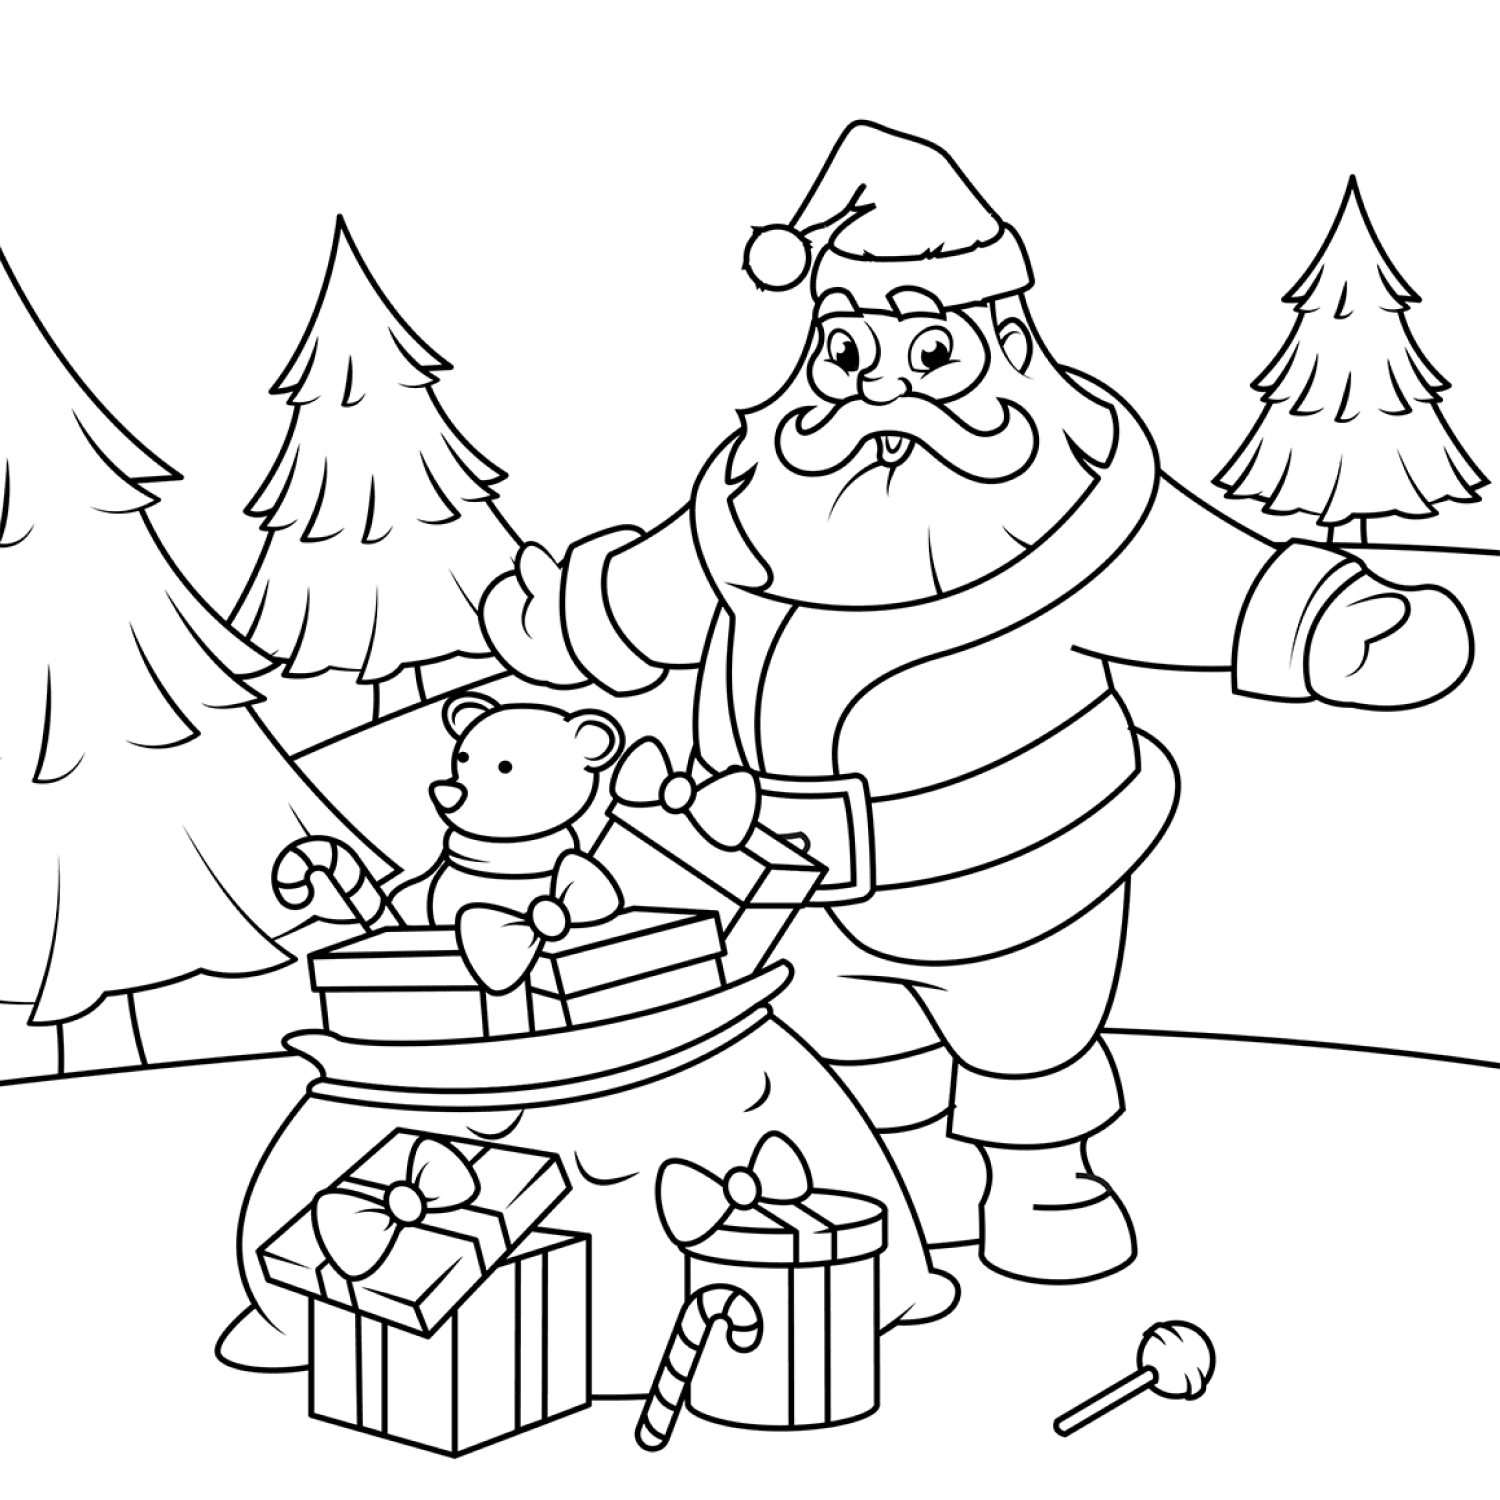 Santa Claus with gifts cover image.